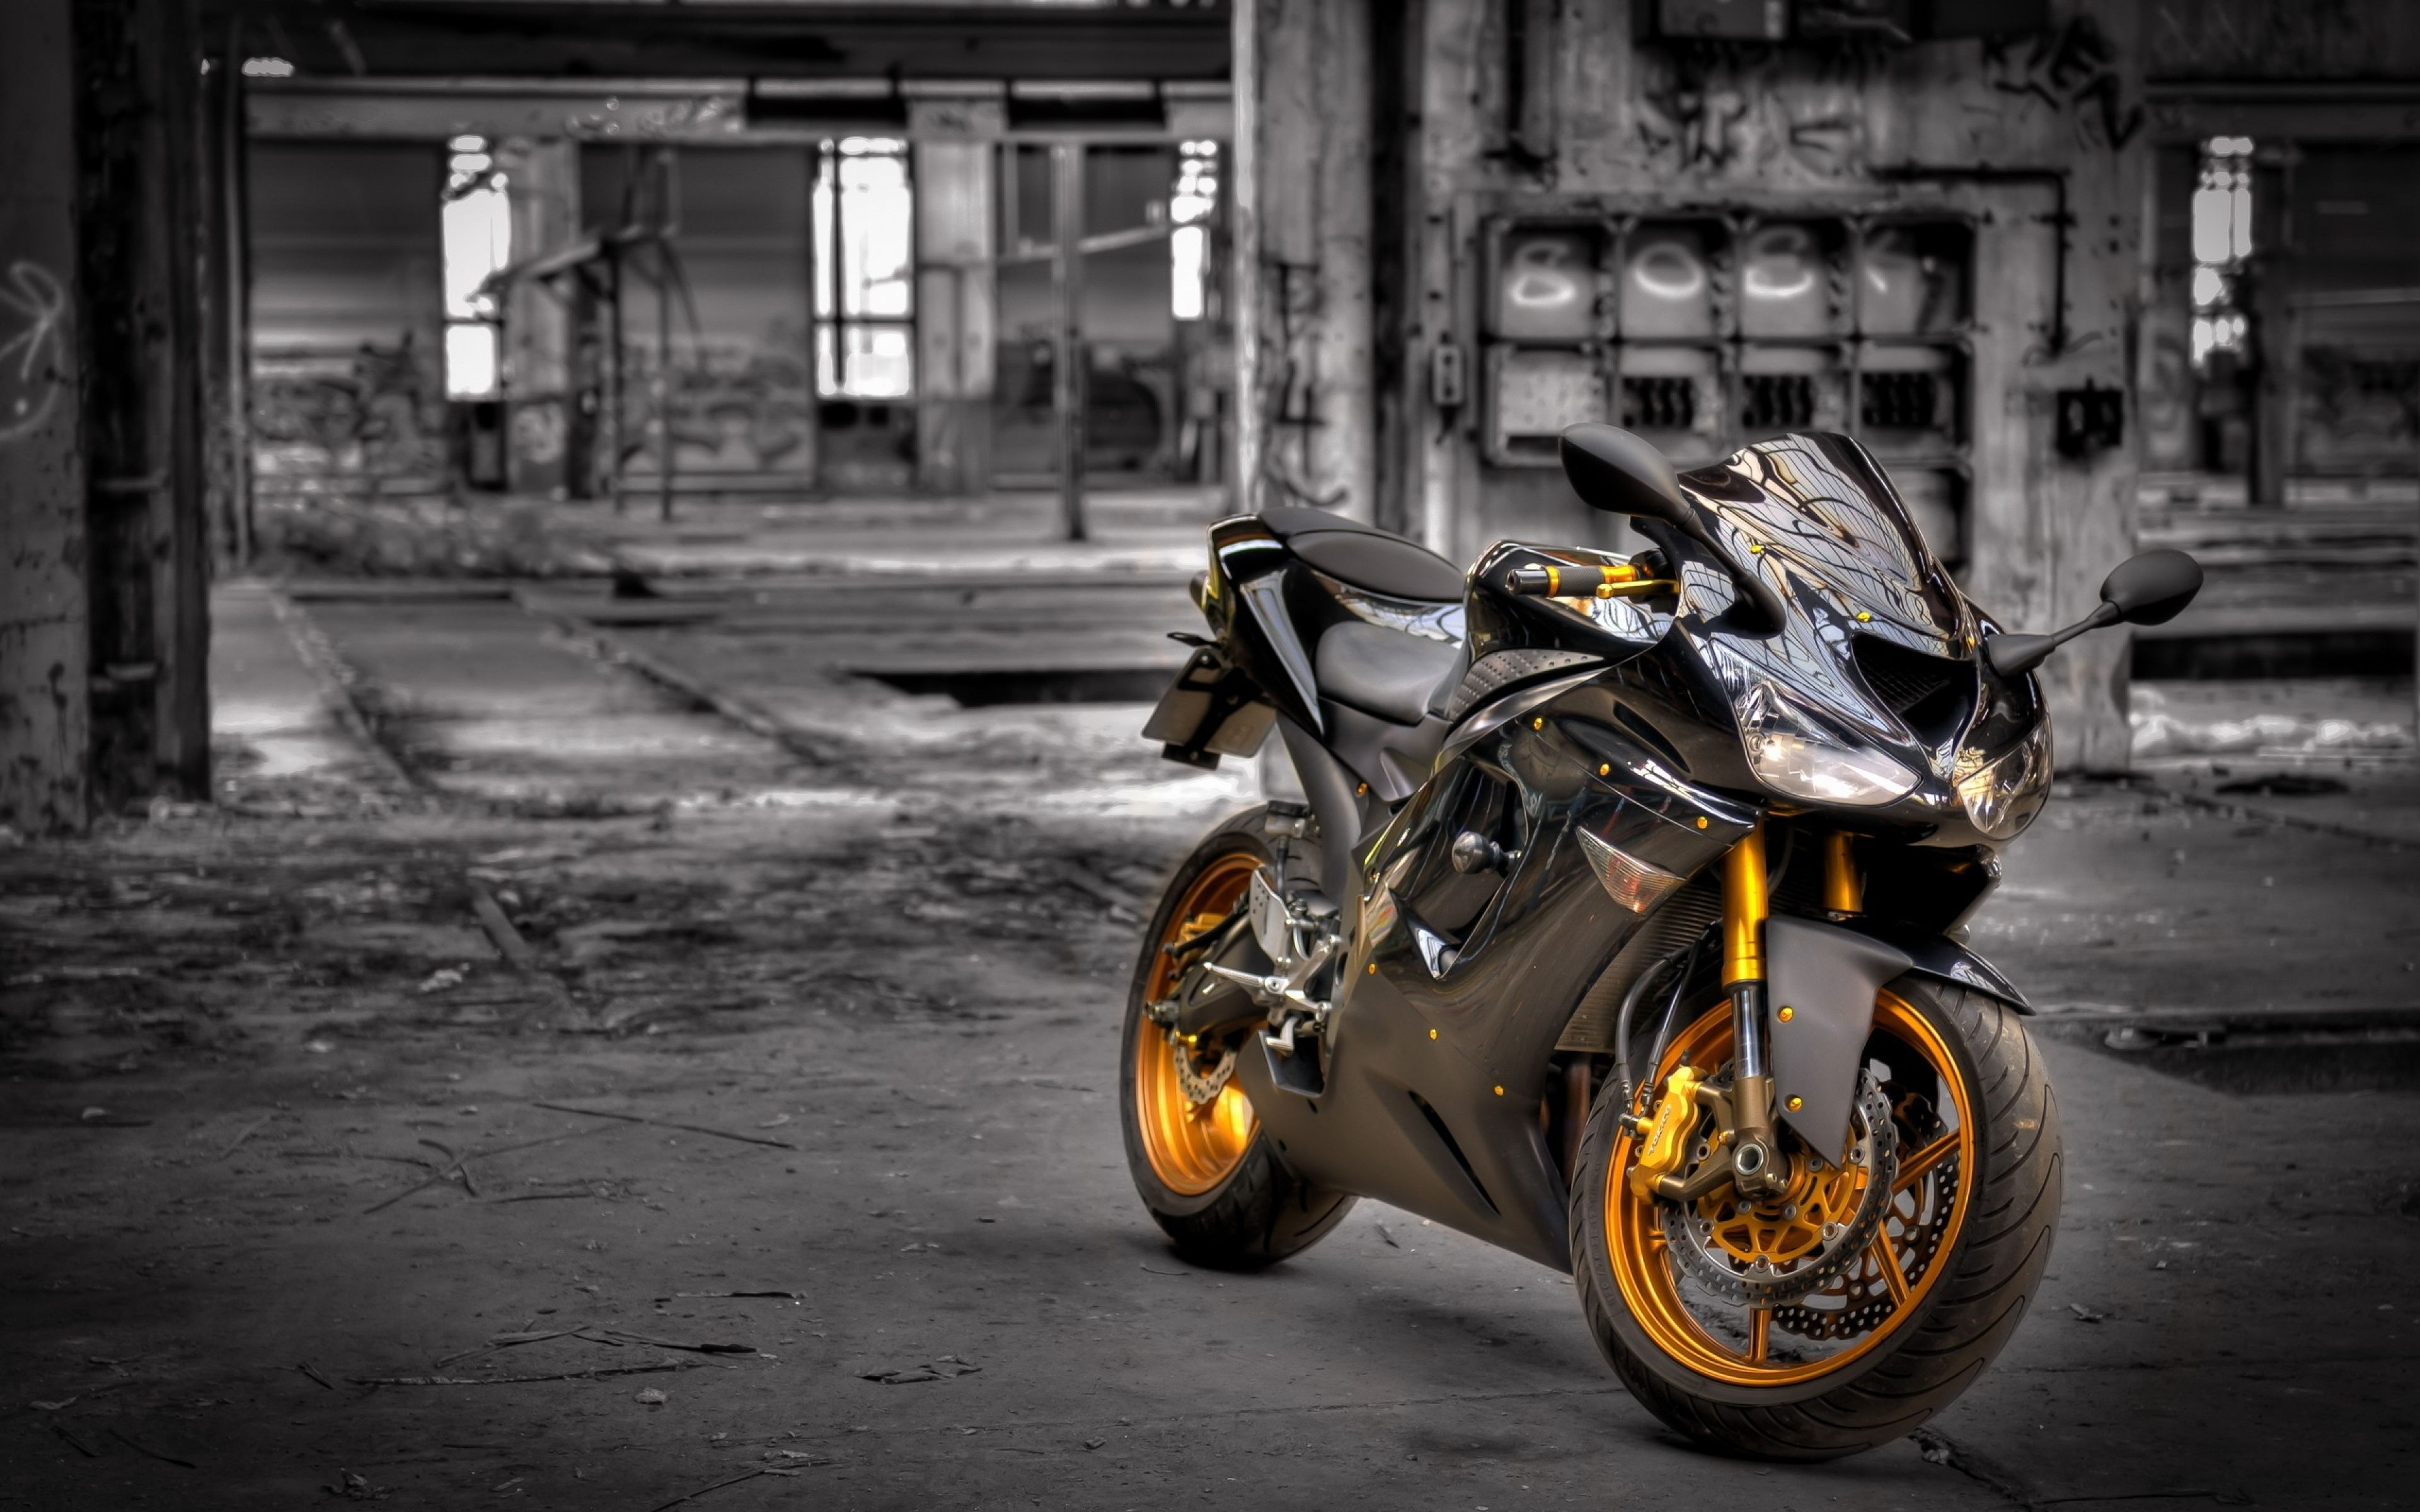 Explore Hd Motorcycles, Kawasaki Motorcycles And More! Pictures Gallery